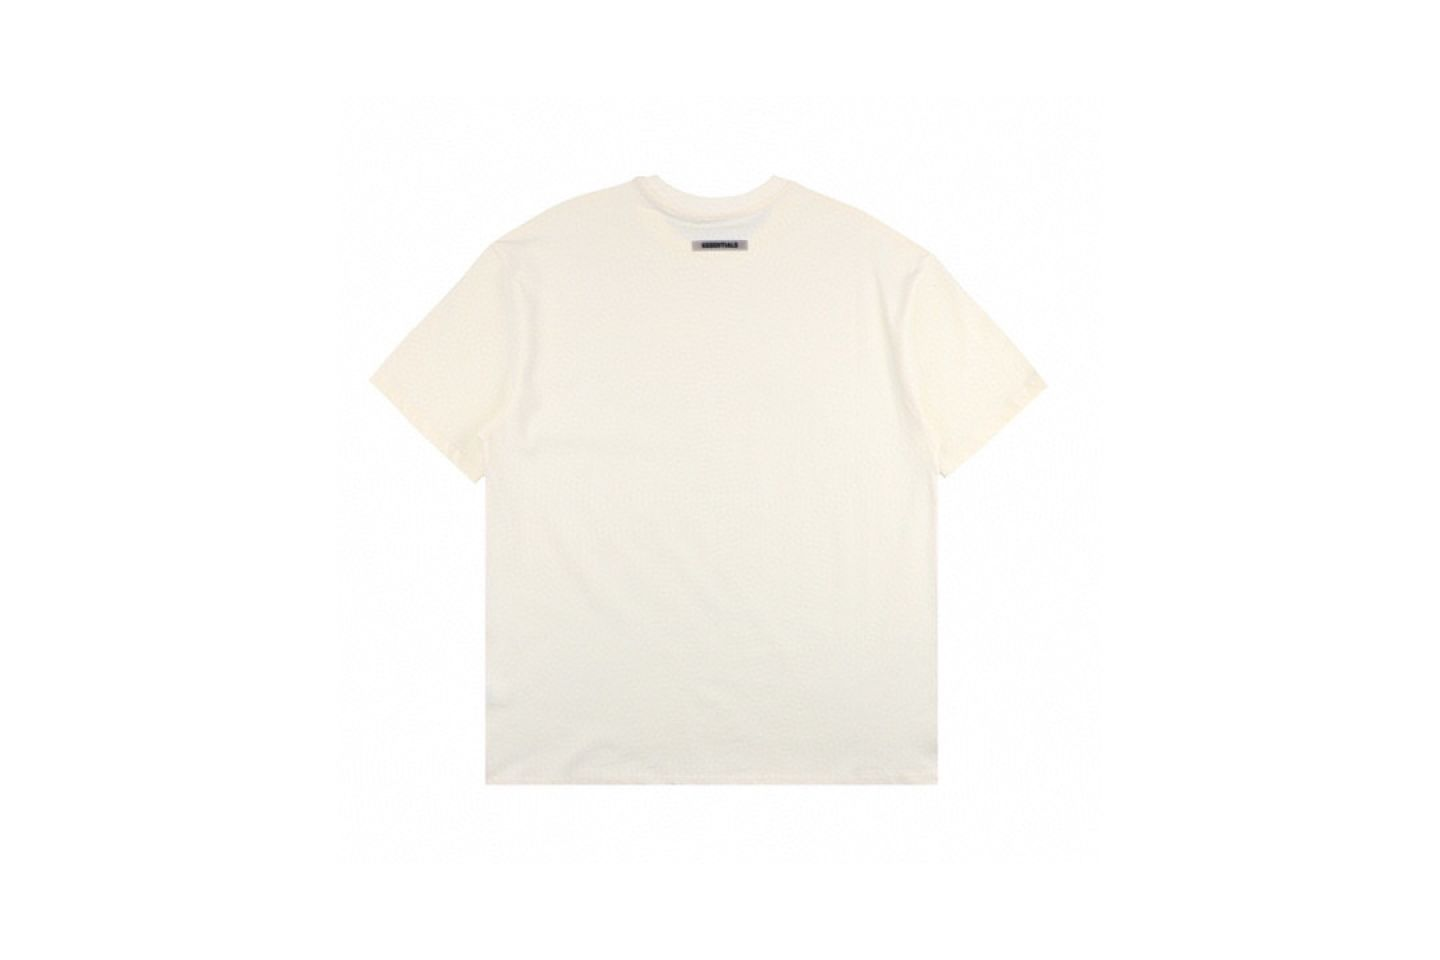 """Shirt Fear Of God ss20 ESSENTIALS double-line chest letter short-sleeved T-shirt """"White"""" 5 fear_of_god_ss20_essentials_double_line_chest_letter_short_sleeved_t_shirt_white_5"""